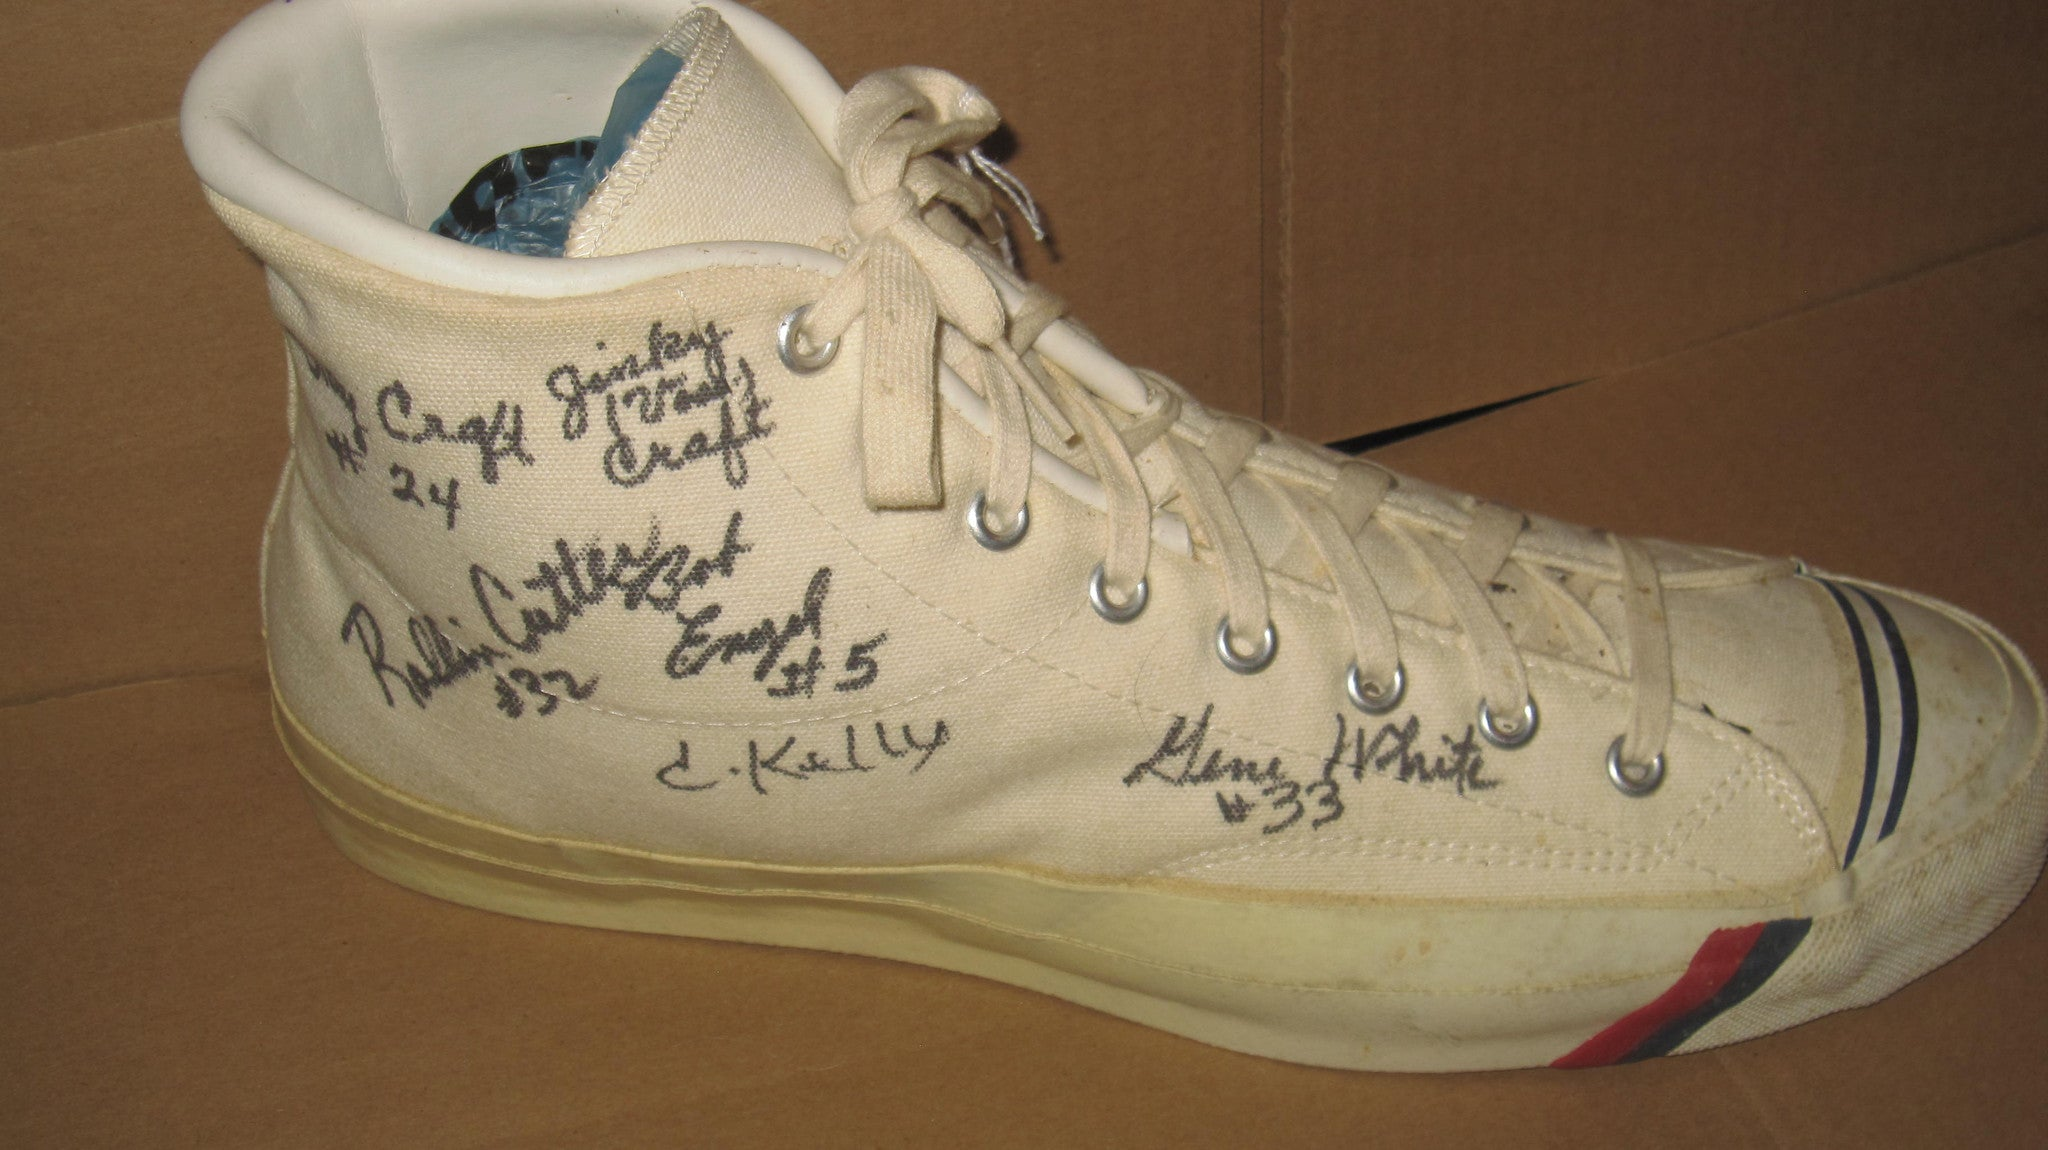 1954 Milan Basketball Team Autographed Pro Keds Sneaker - Vintage Indy Sports